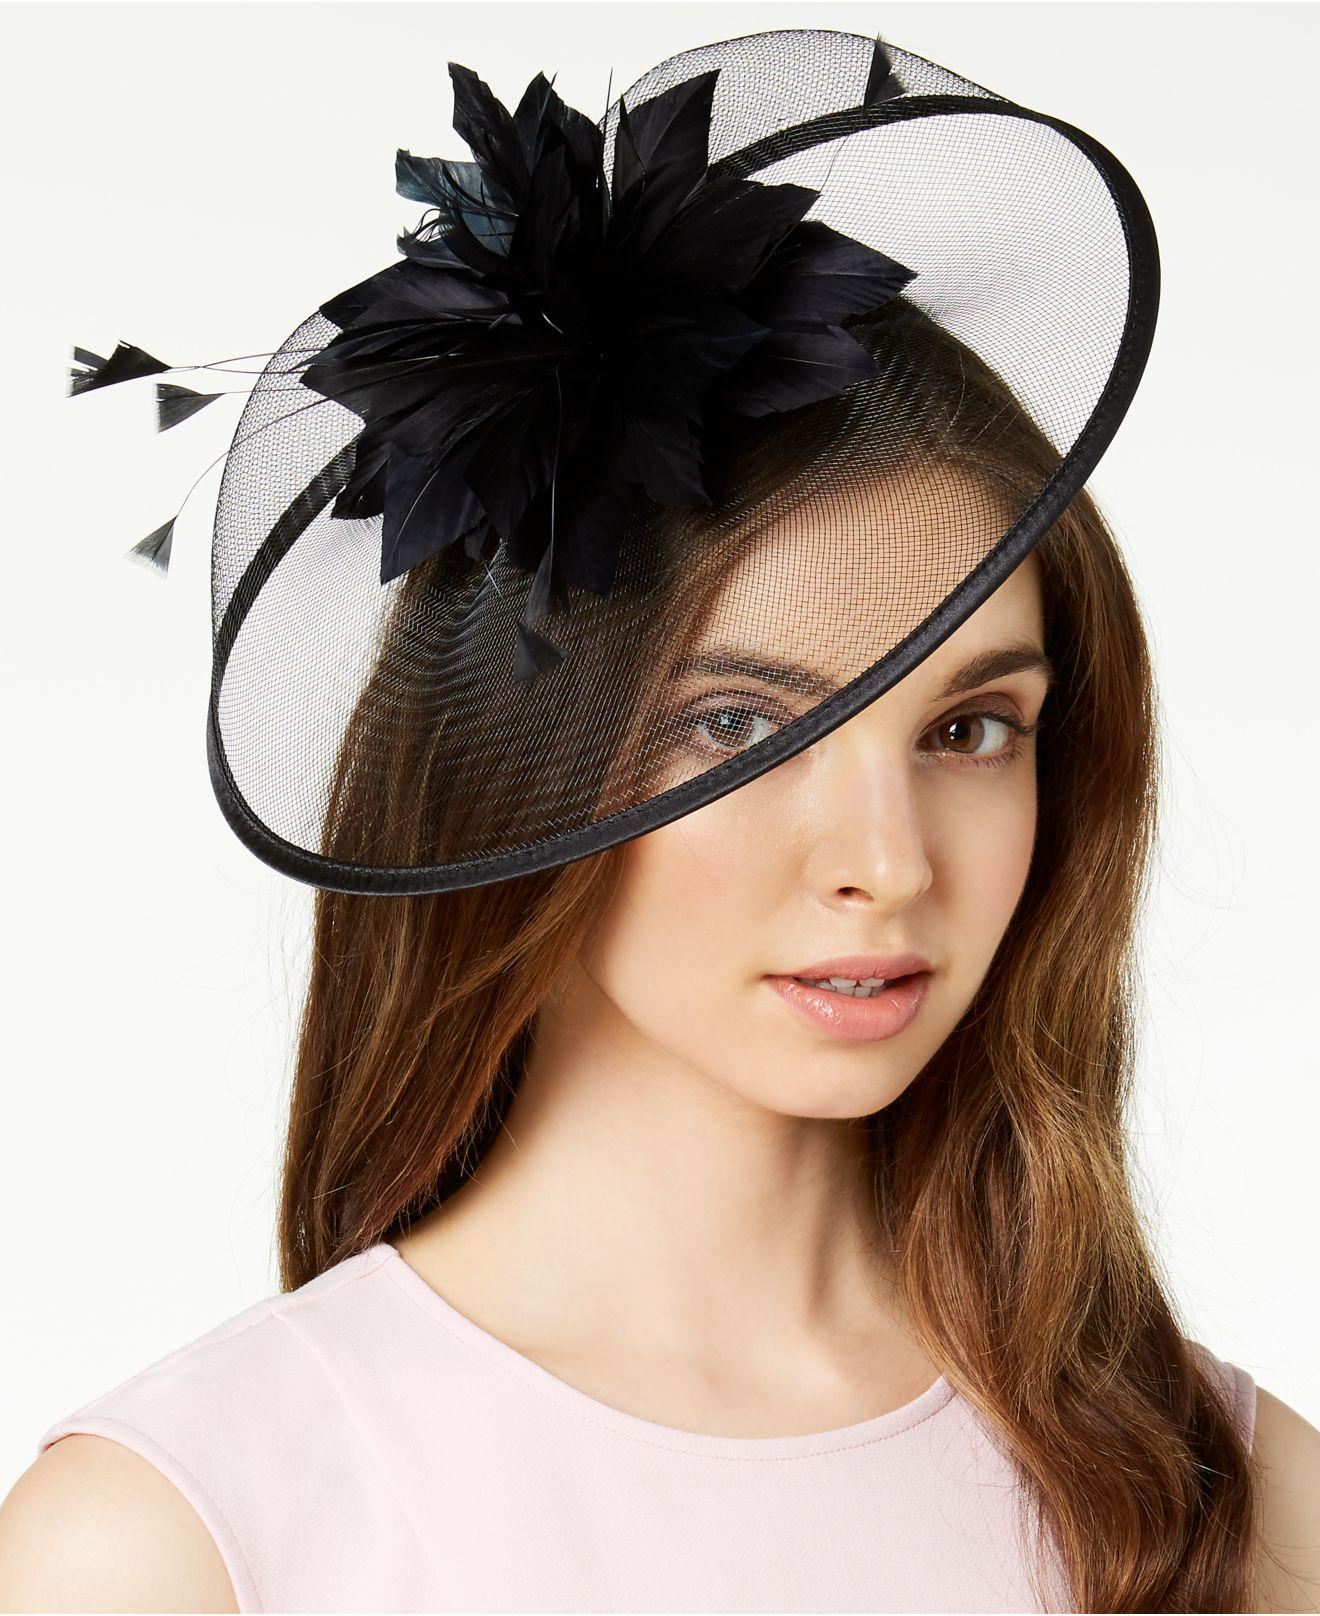 dfc28b8ee06b0 Lyst - August Accessories Jade Fascinator in Black